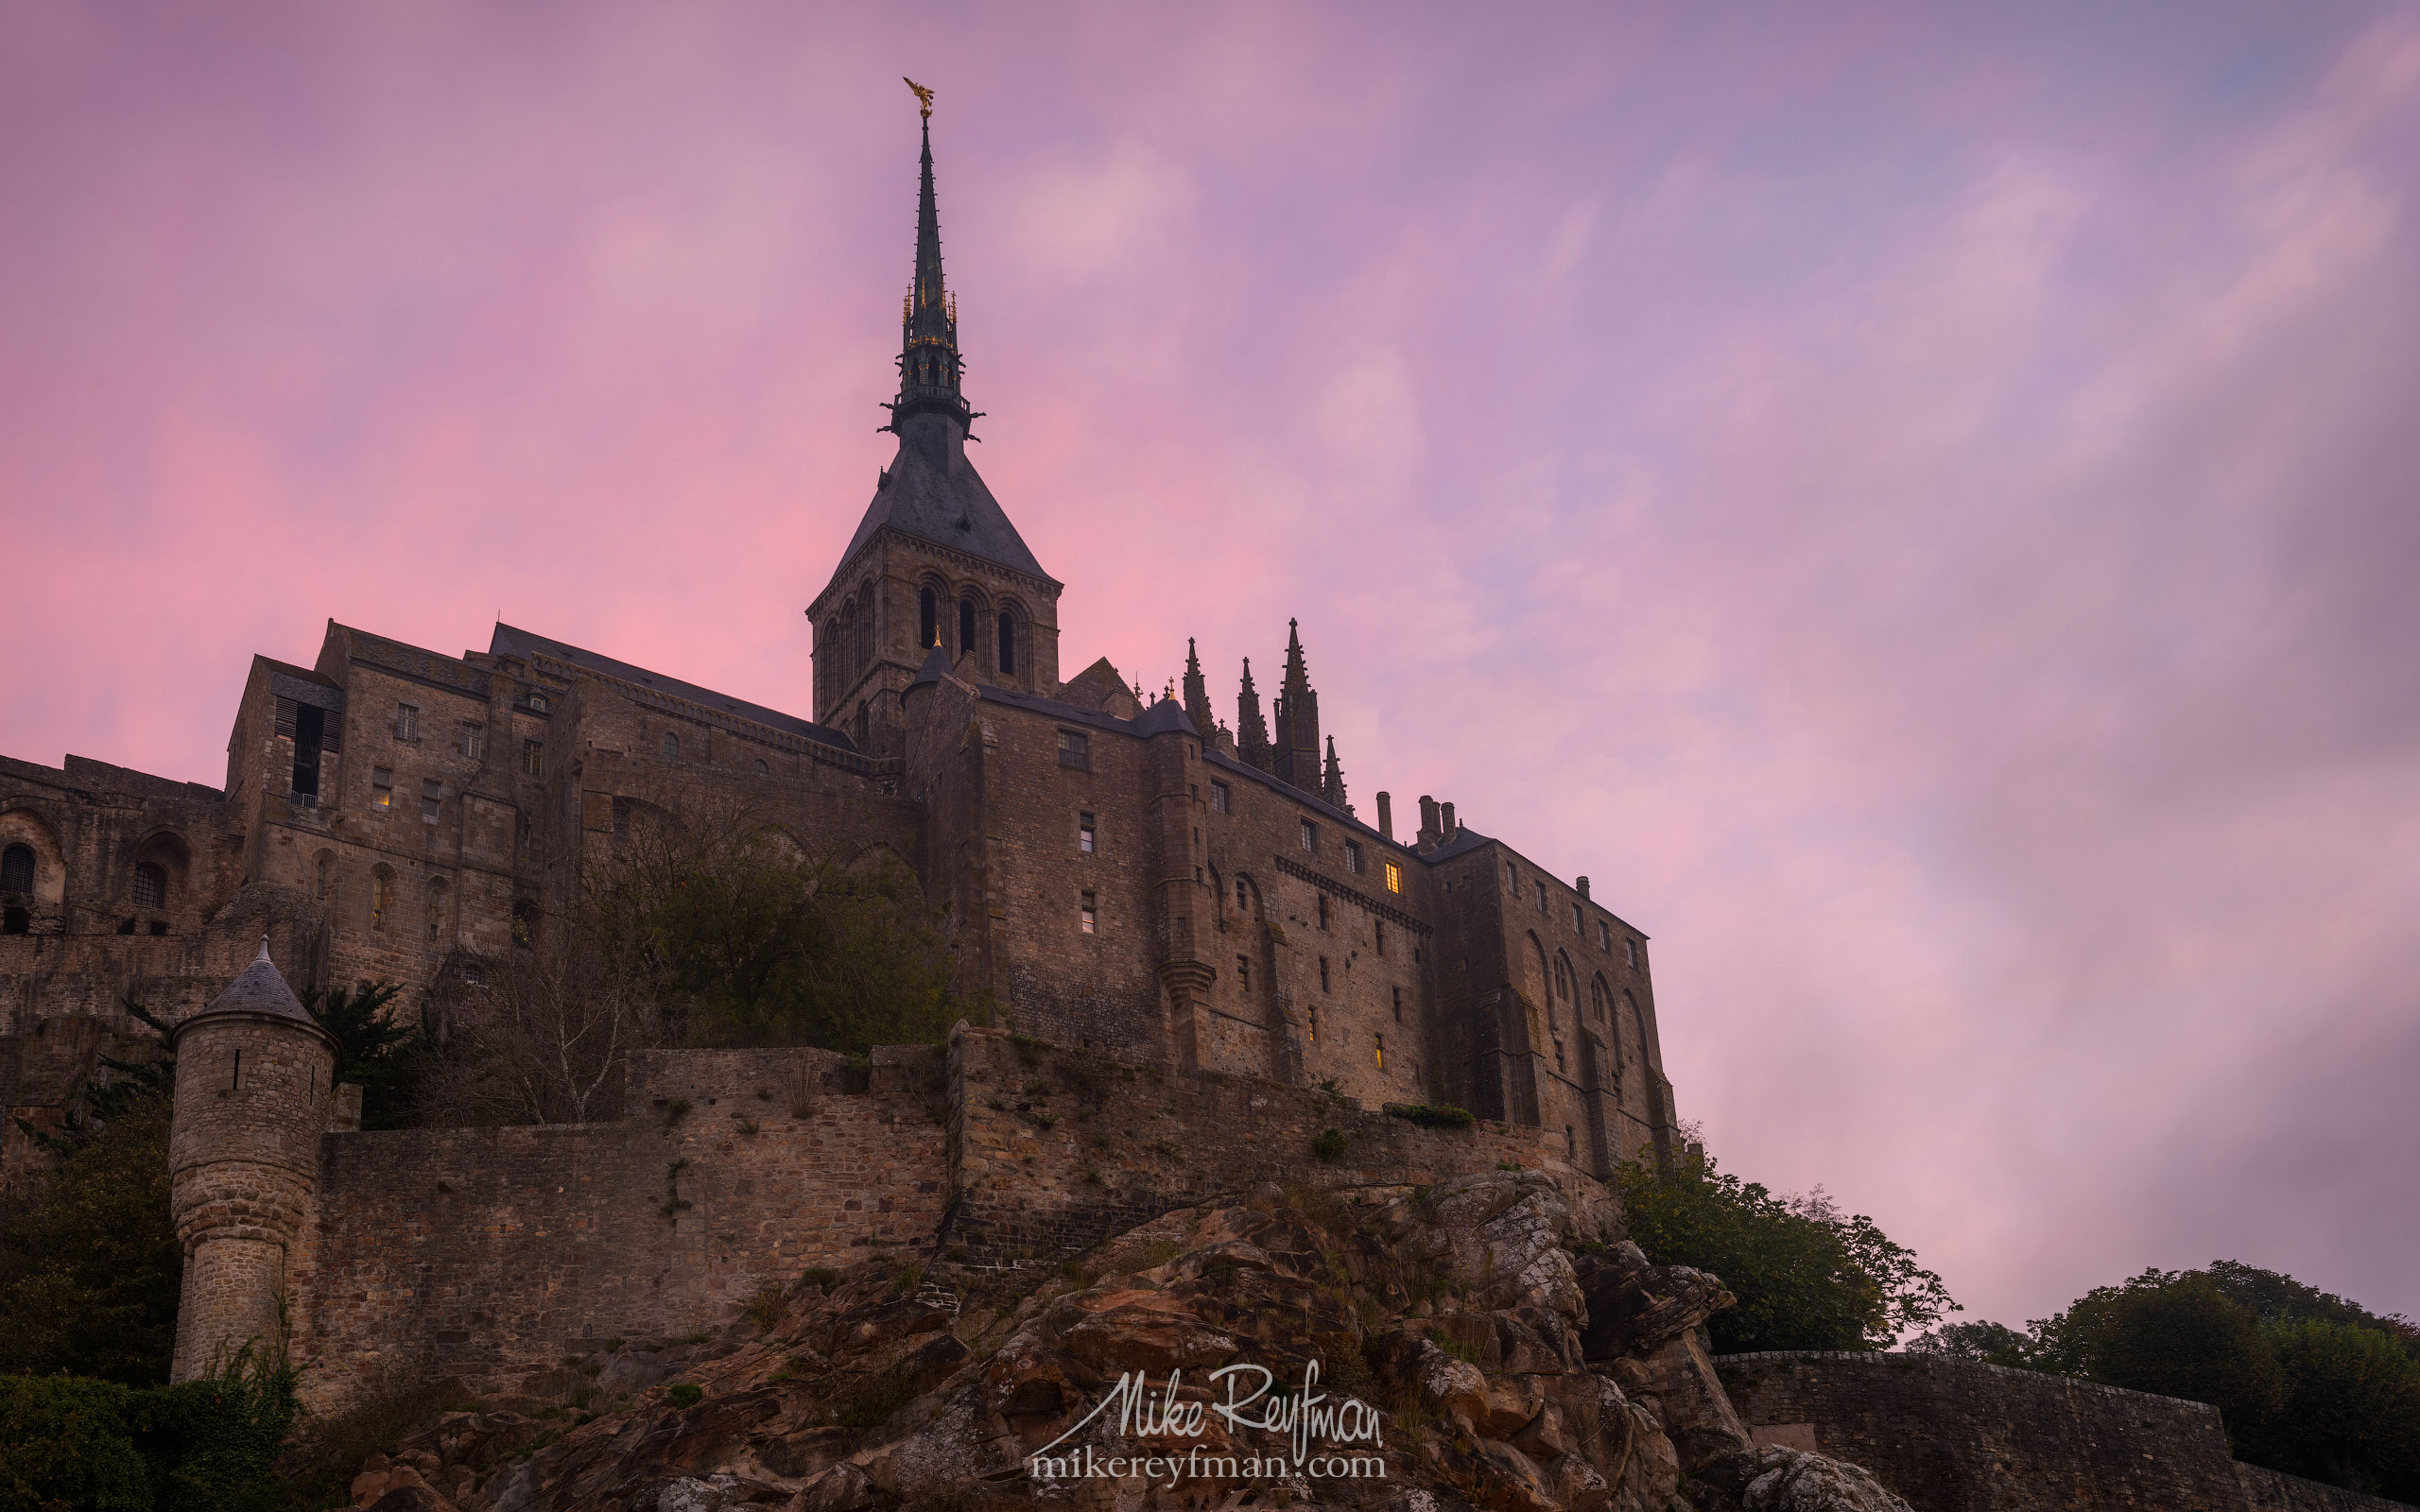 Le Mont-Saint-Michel Island and Benedictine Abbey. Normandy, France SM_MR50A1115 - Le Mont Saint Michel Island and Benedictine Abbey, Normandy, France - Mike Reyfman Photography